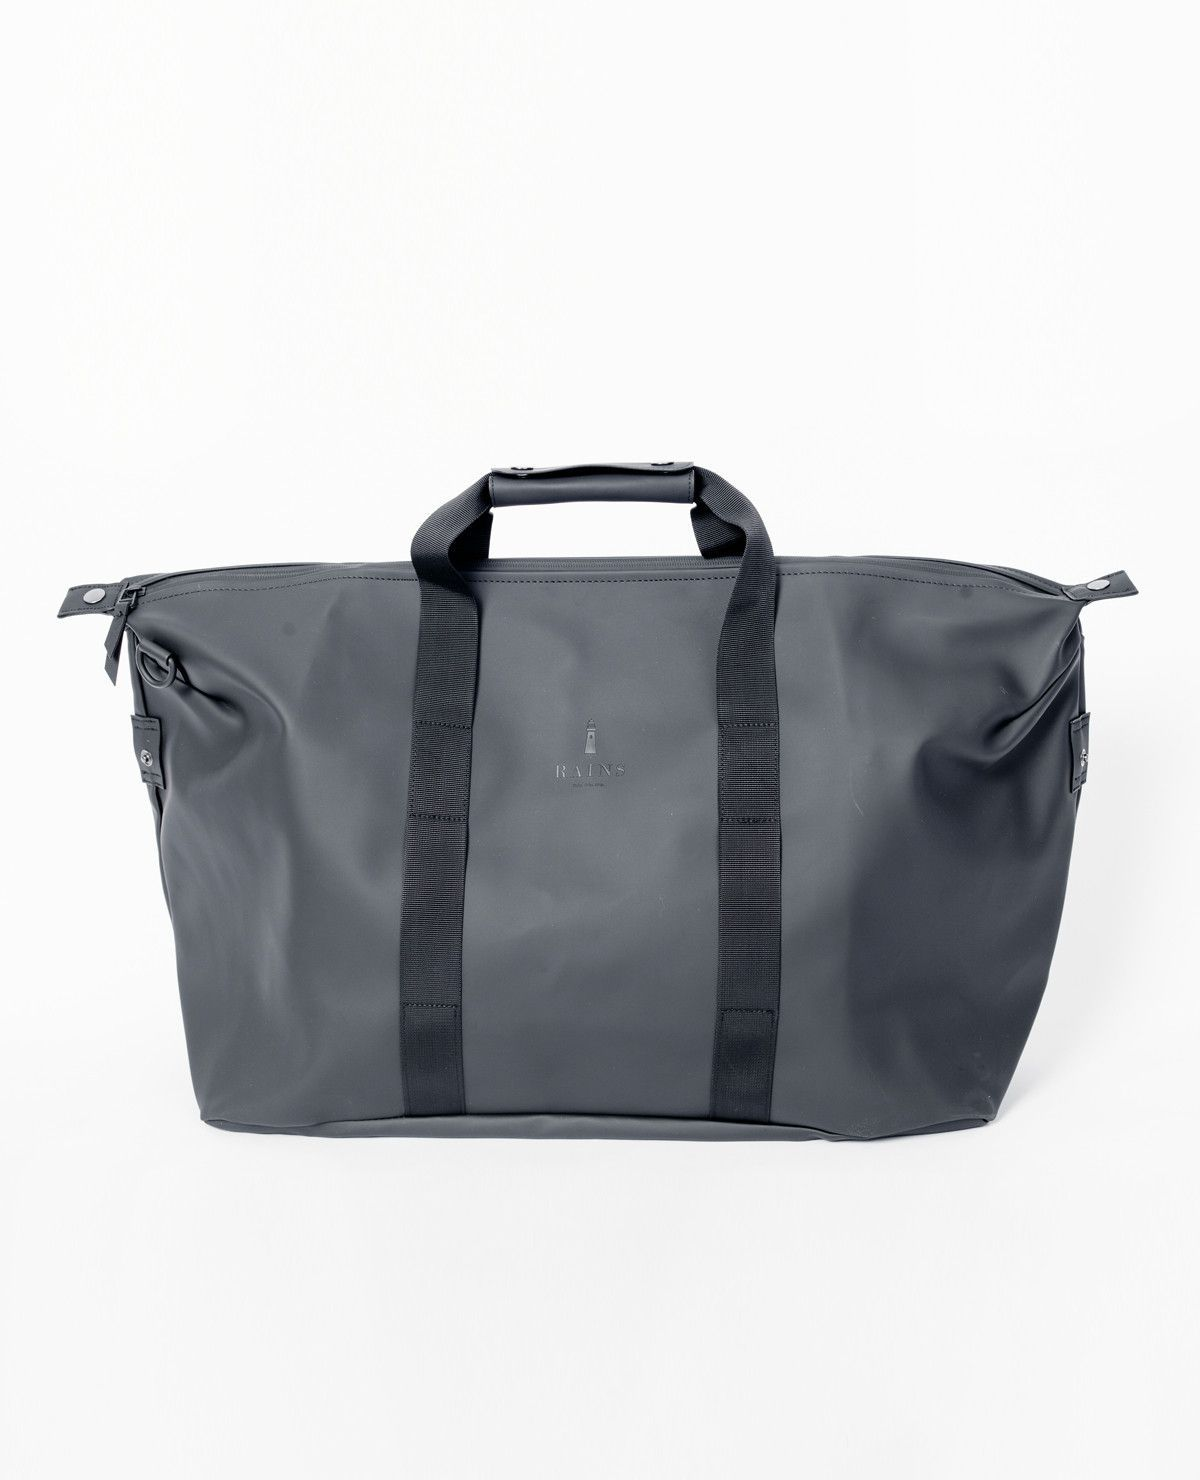 0c7cdd89bc97 RAINS Duffle Bag The bag is inspired by the classic travel bag. It has one